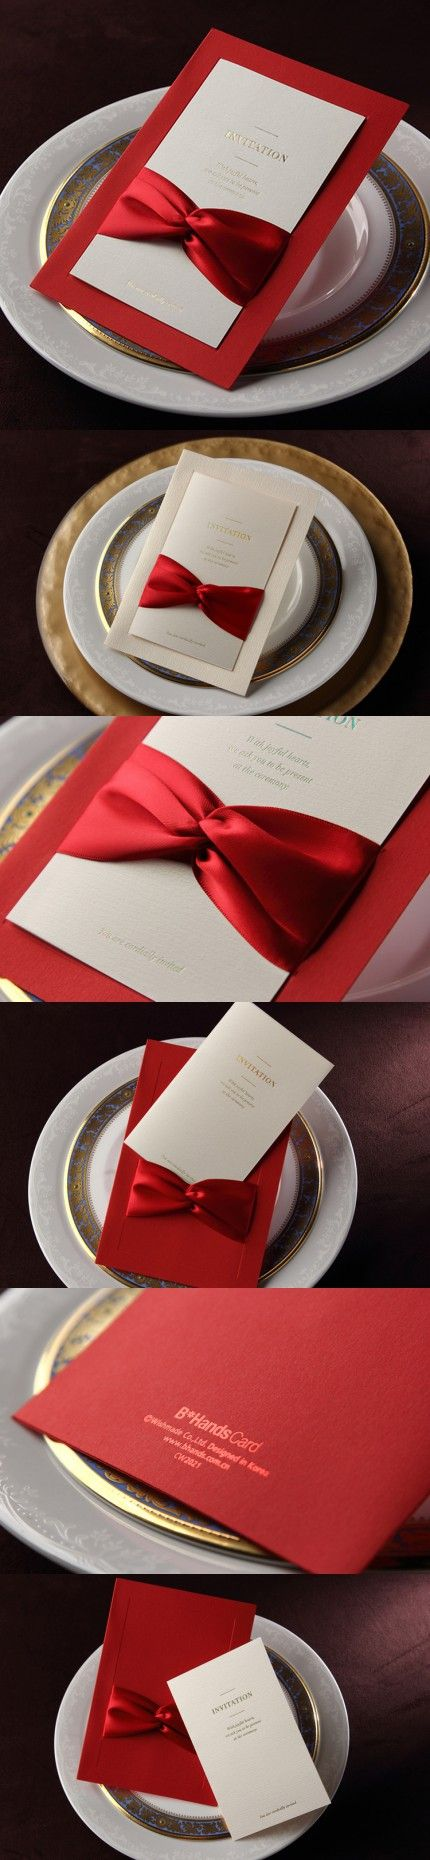 111 best wedding stationery images on Pinterest | Invitation cards ...